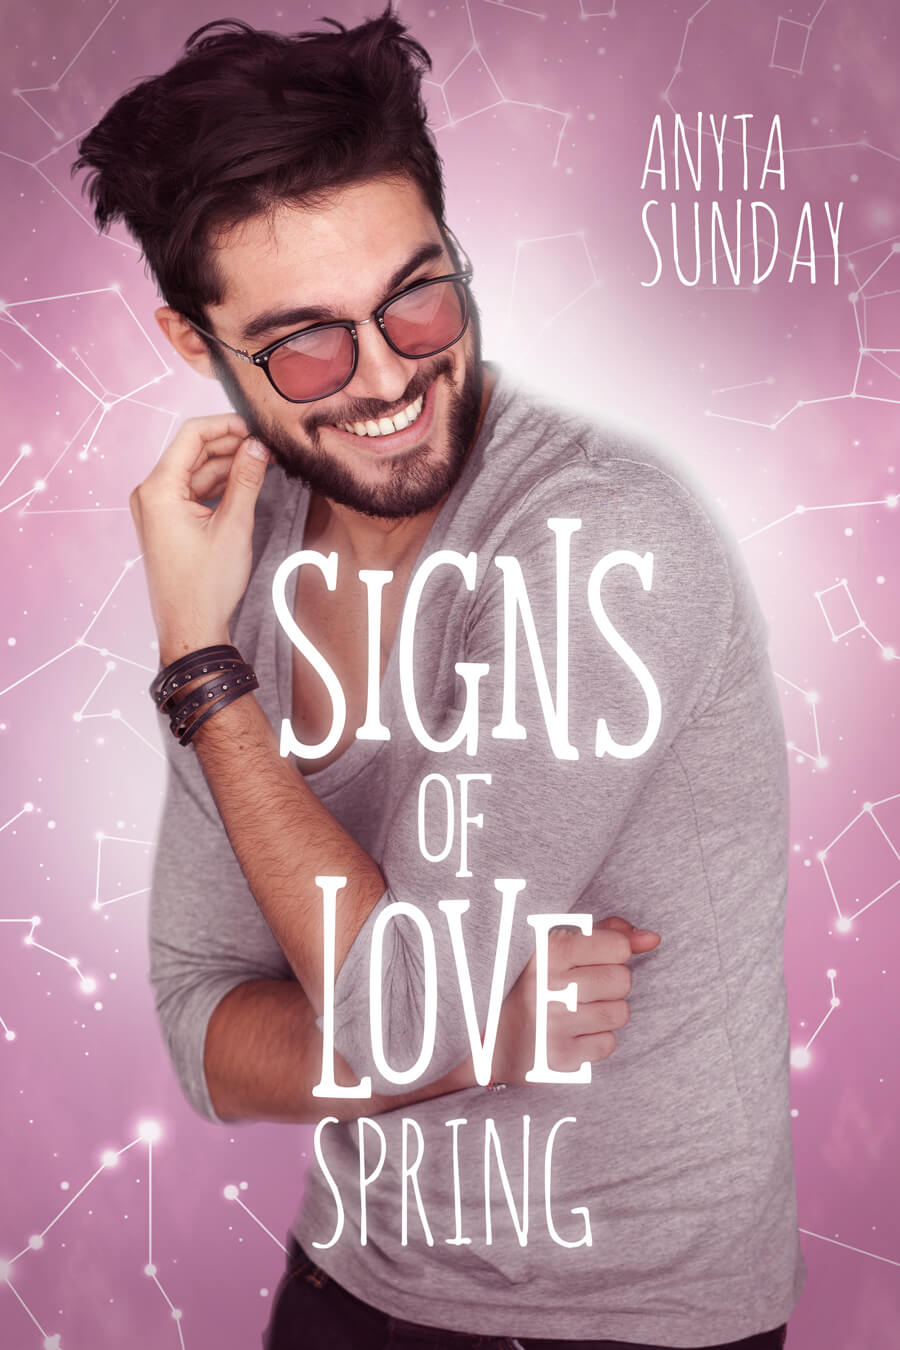 Signs of Love Spring Gay Romance Novella by Anyta Sunday